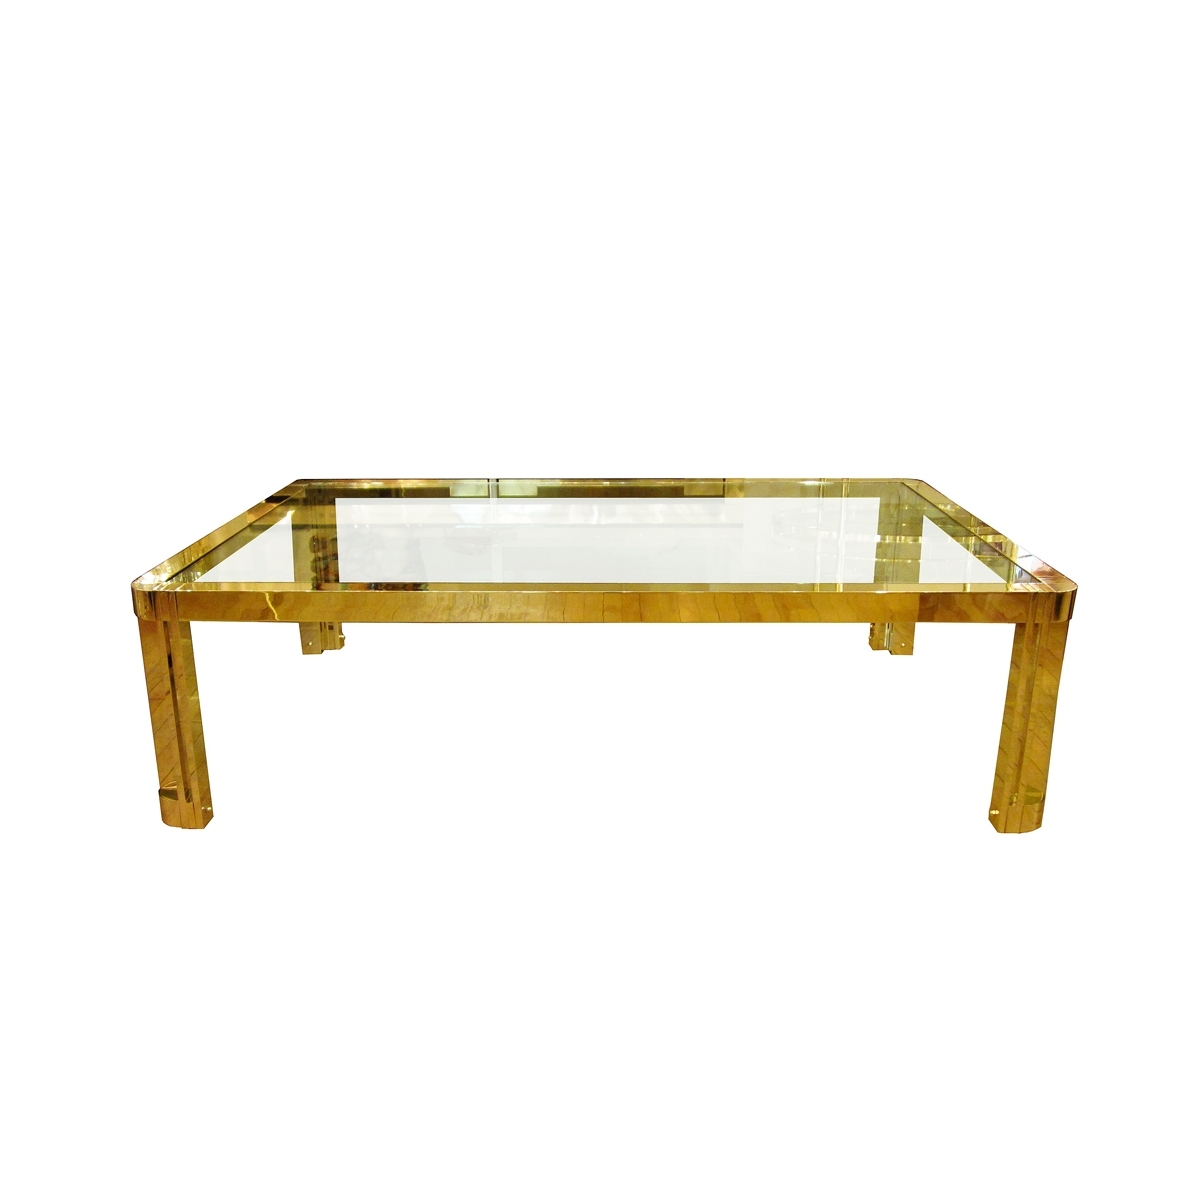 2018 Rectangular Coffee Tables With Brass Legs Regarding Large Rectangular Brass And Glass Coffee Table With Incised Design (View 5 of 20)